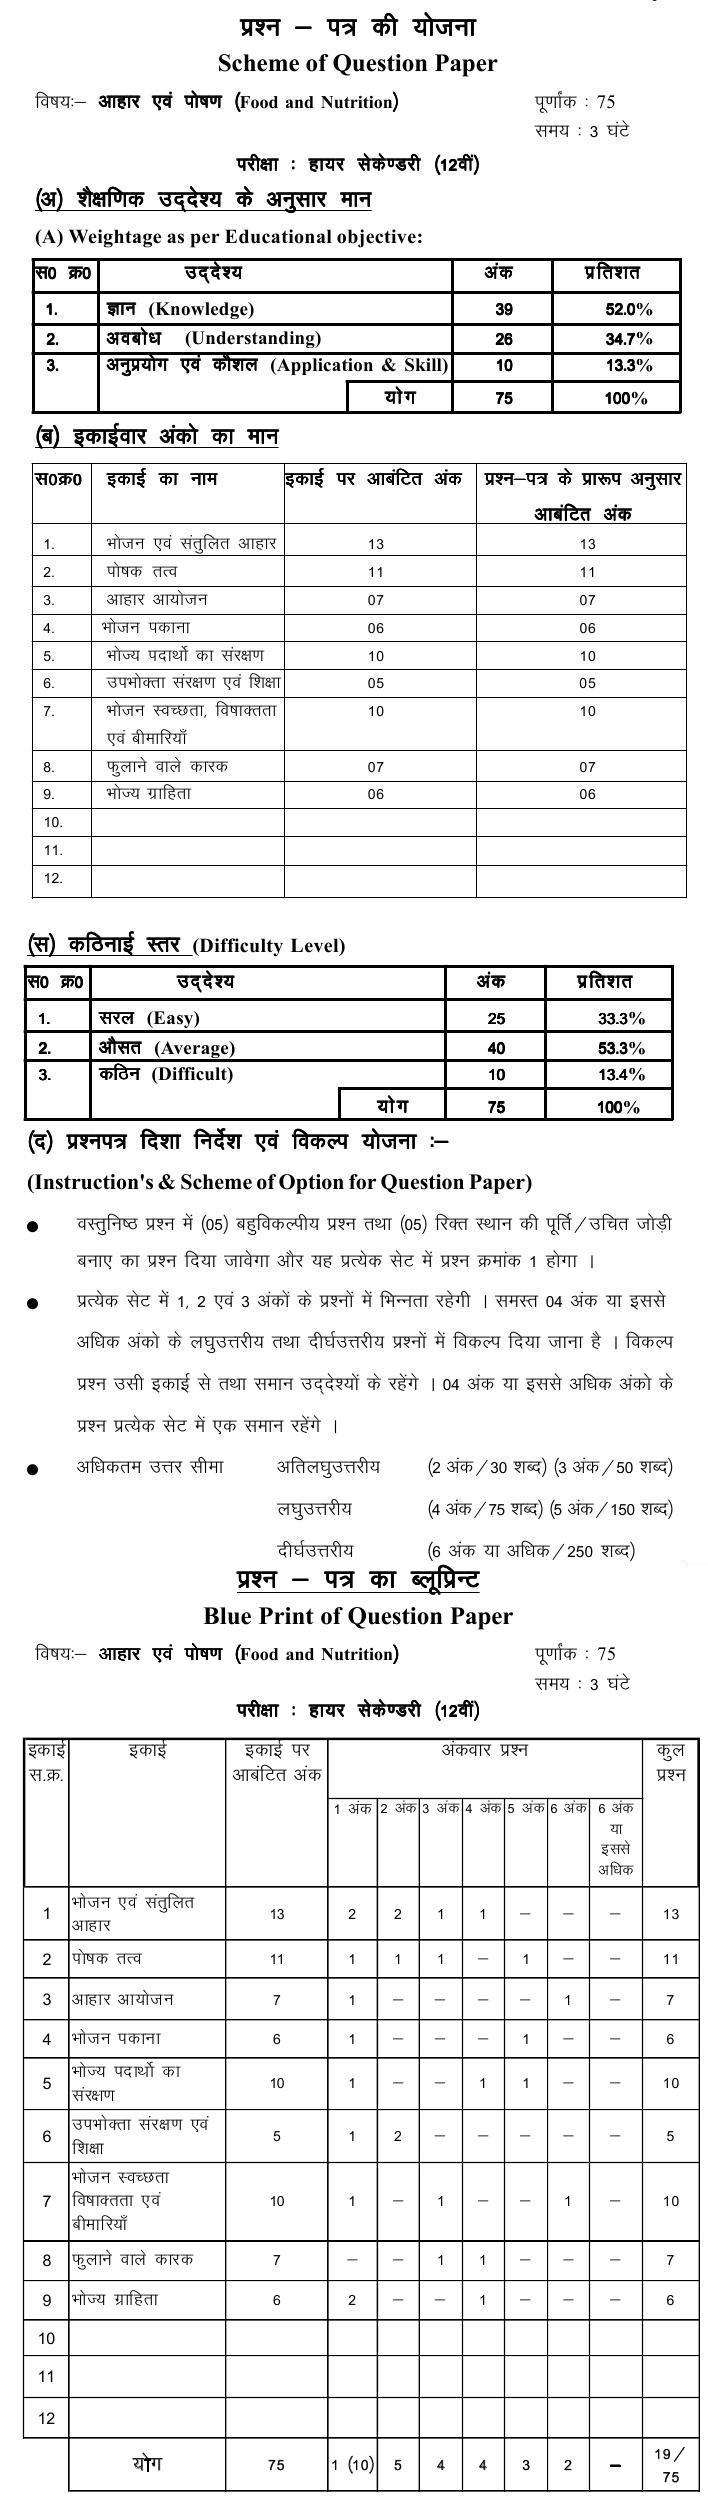 Chattisgarh Board Class 12 Scheme and Blue Print of Food and Nutrition